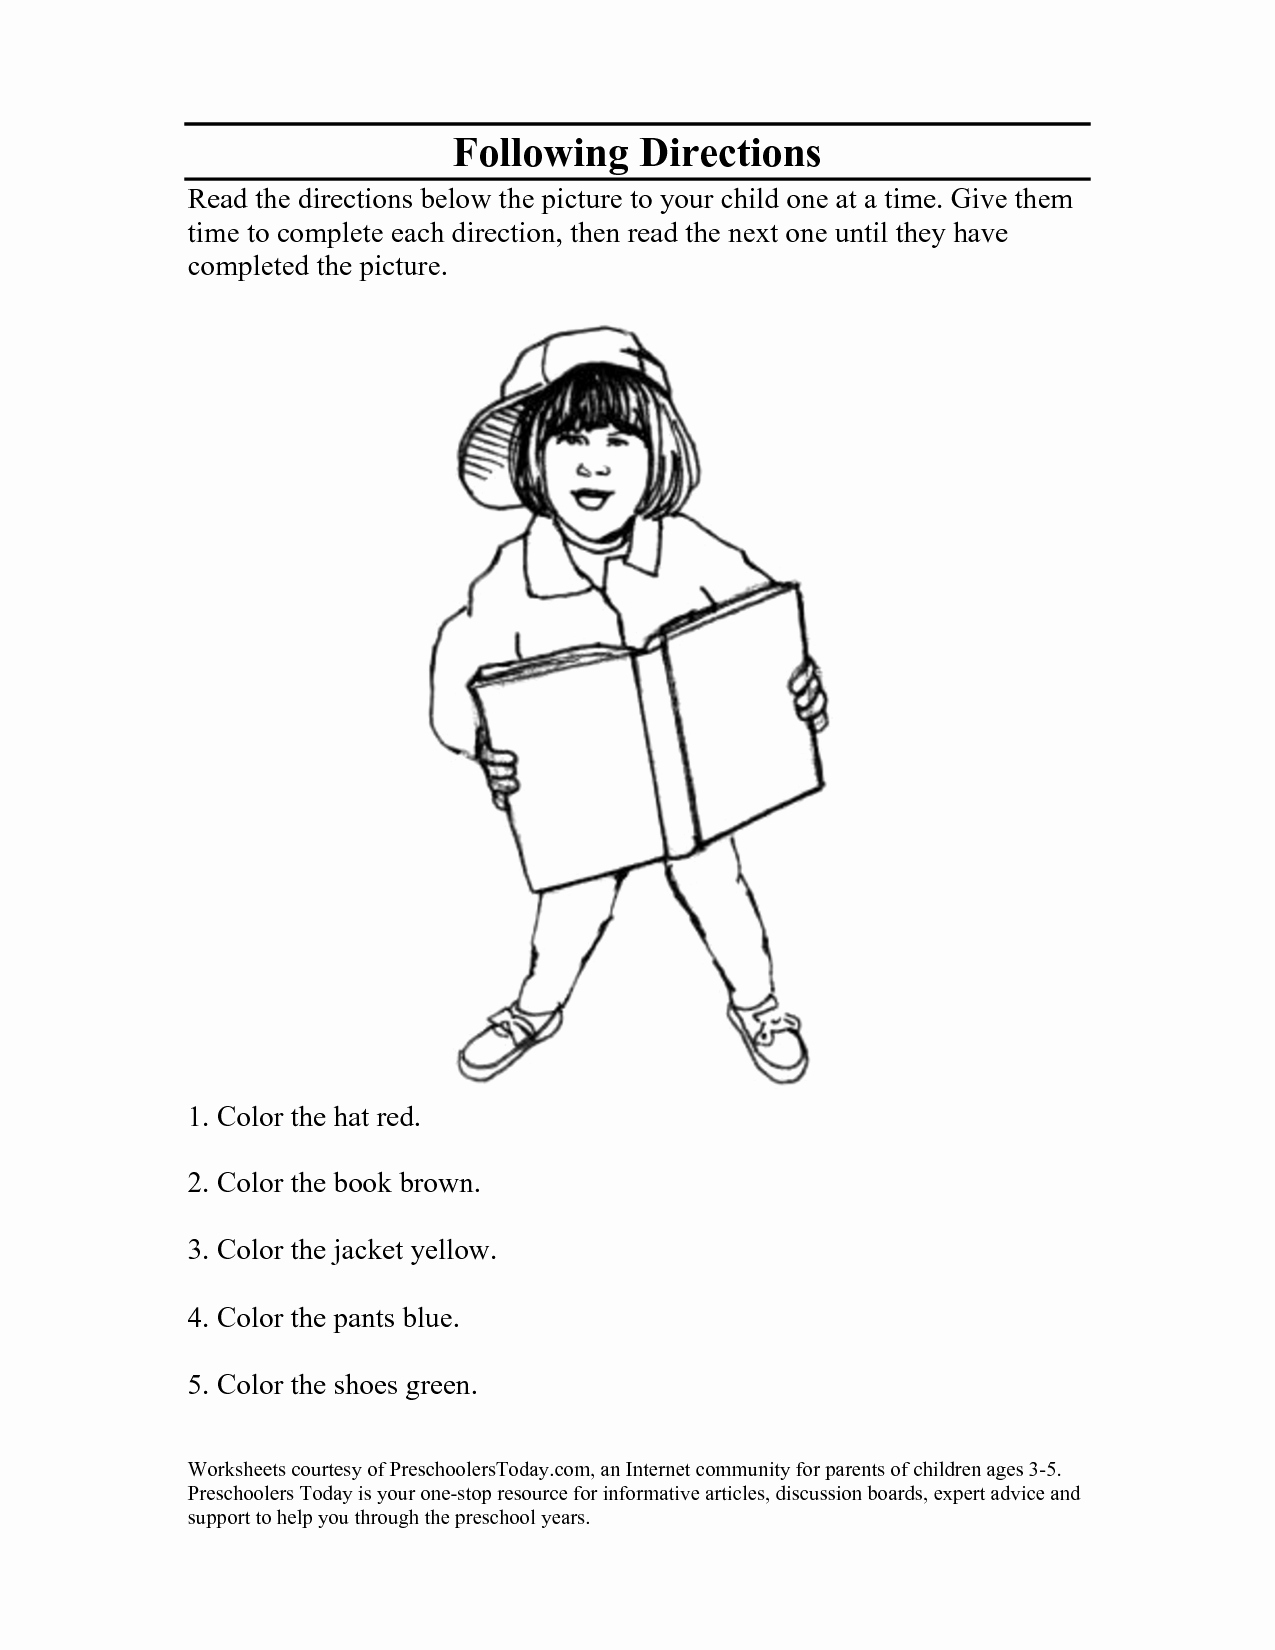 Following Directions Coloring Worksheet Awesome 14 Best Of Follow Directions Worksheets for